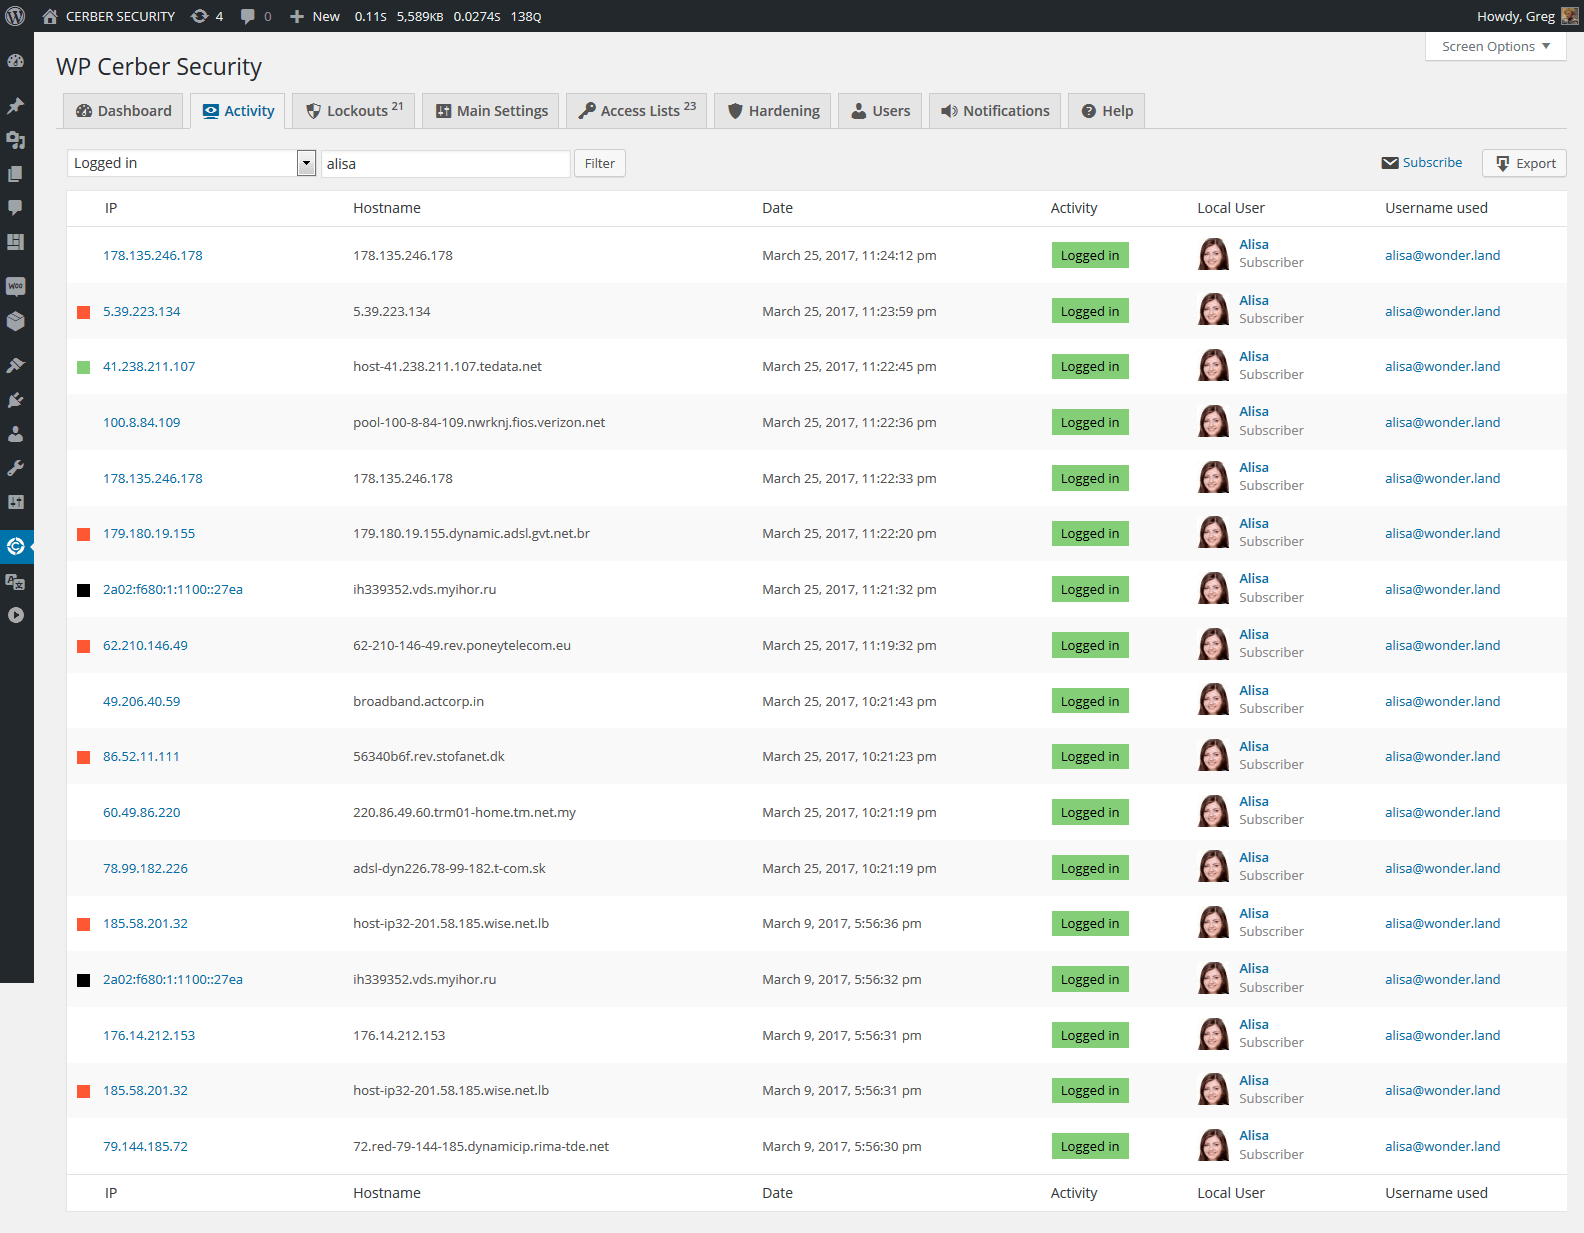 Activity log filtered by login and type of activity